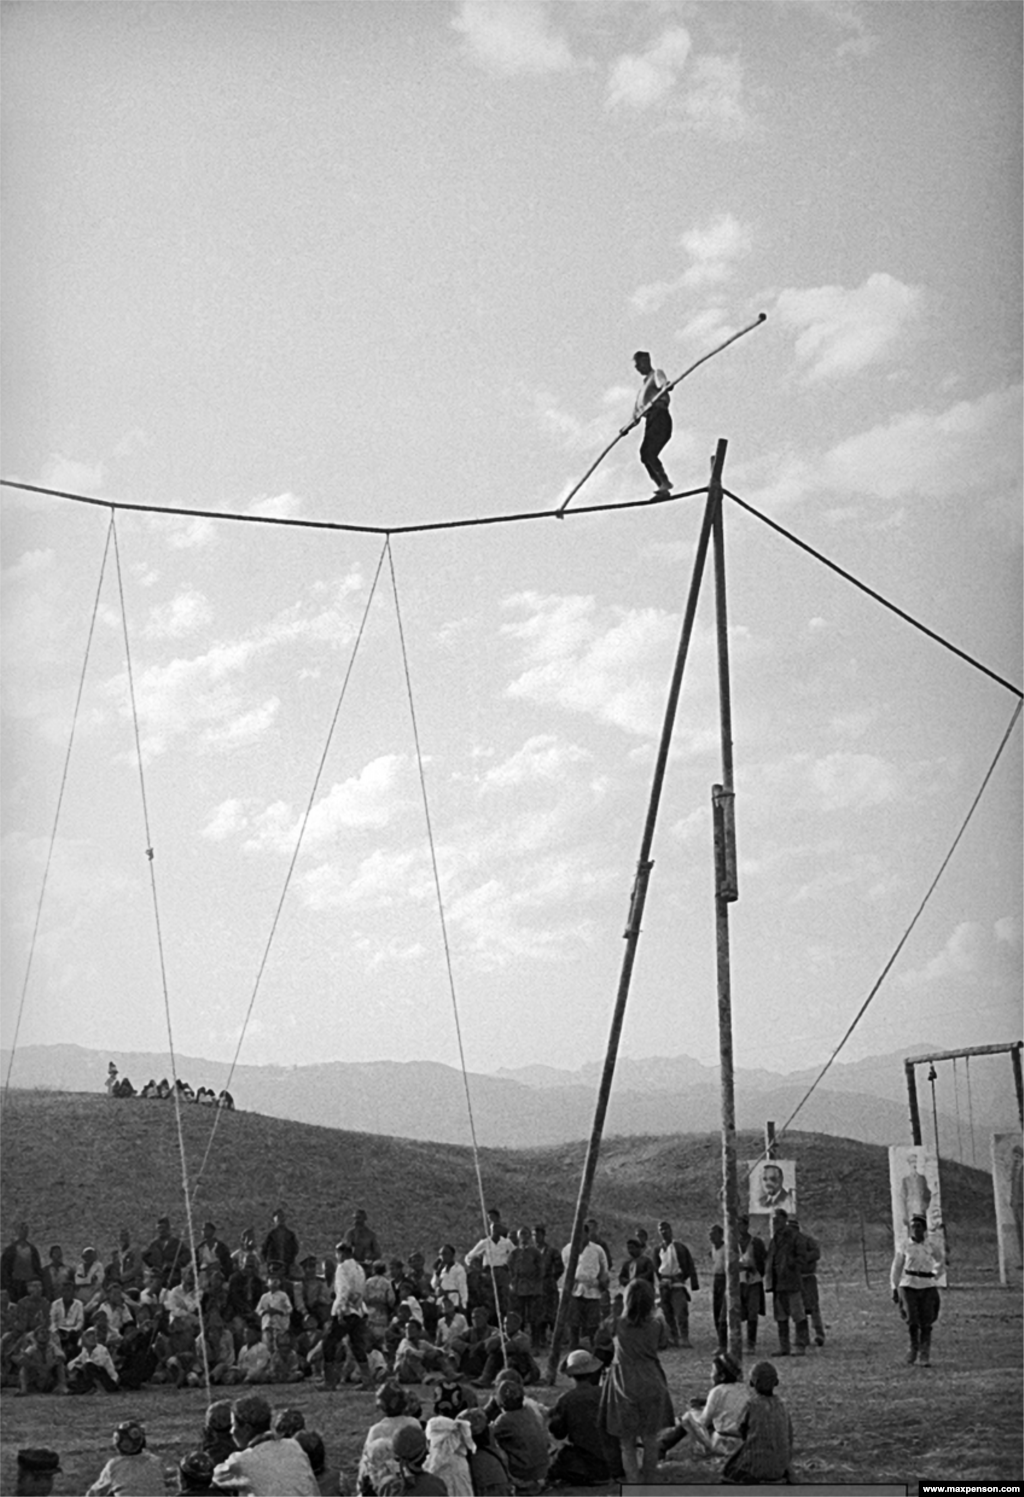 A high-stakes tightrope walker in the 1940s.